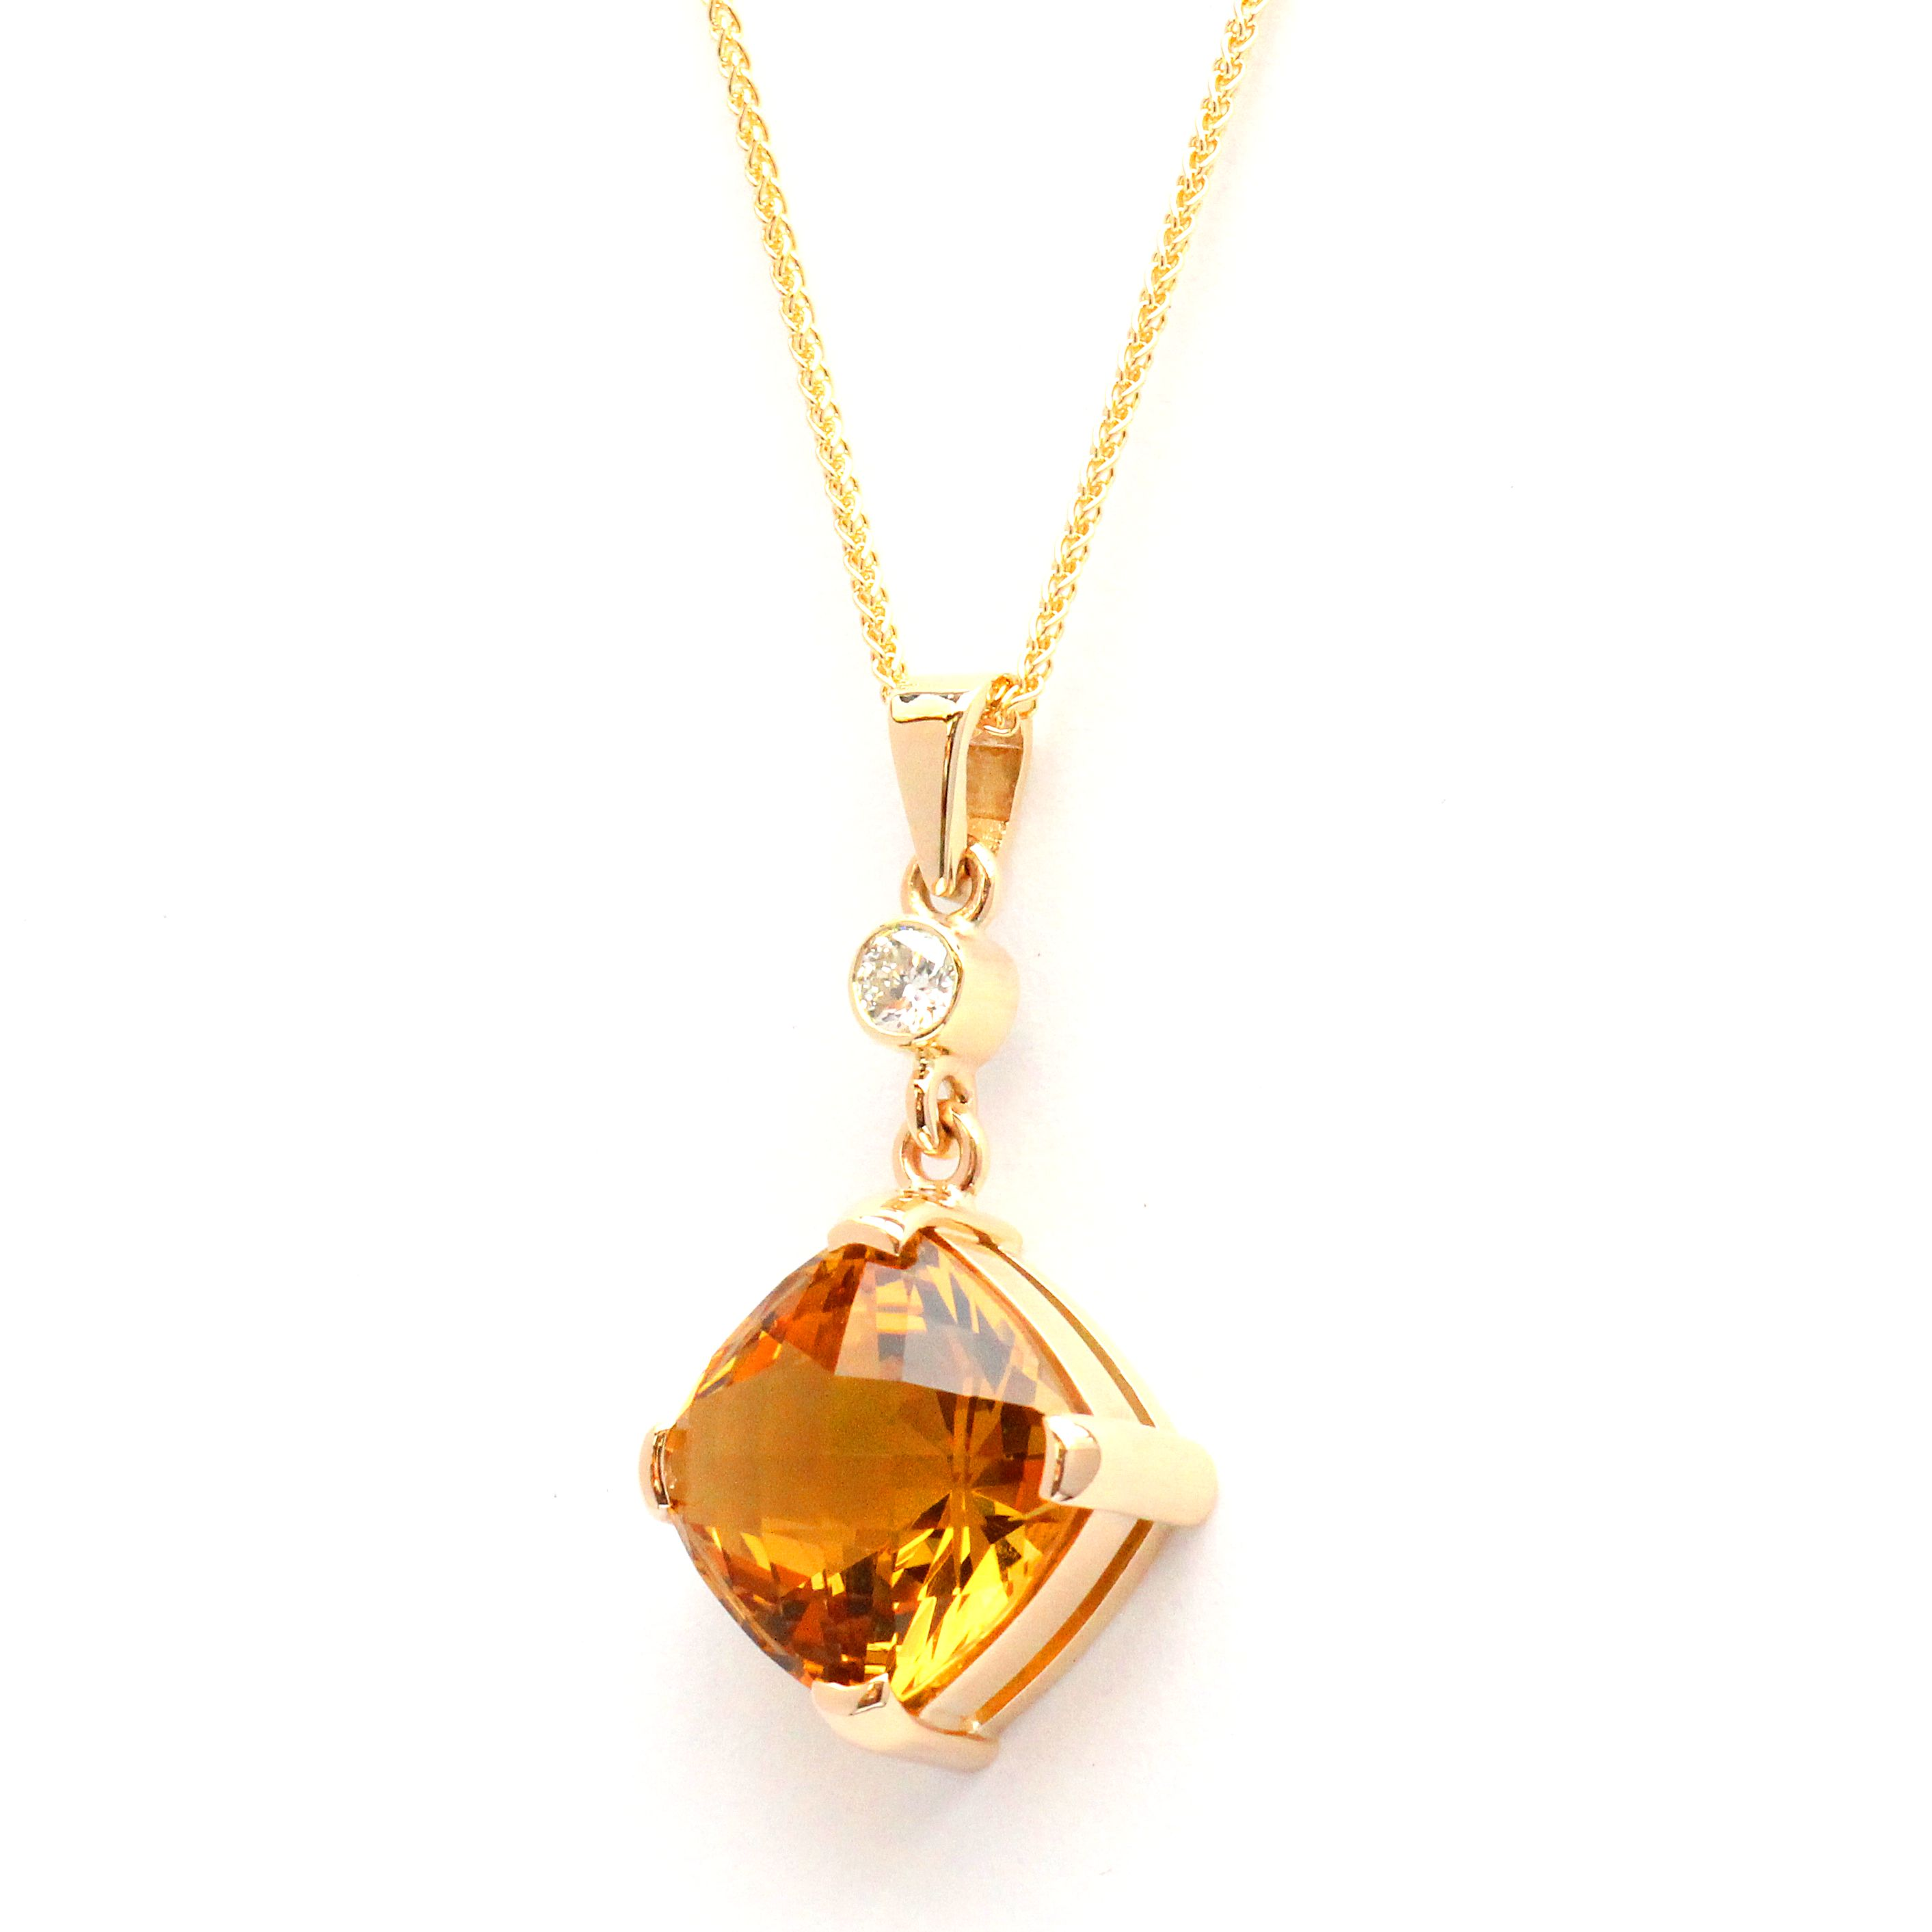 Cushion citrine and diamond pendant riordan jewellers cushion citrine and diamond pendant aloadofball Image collections